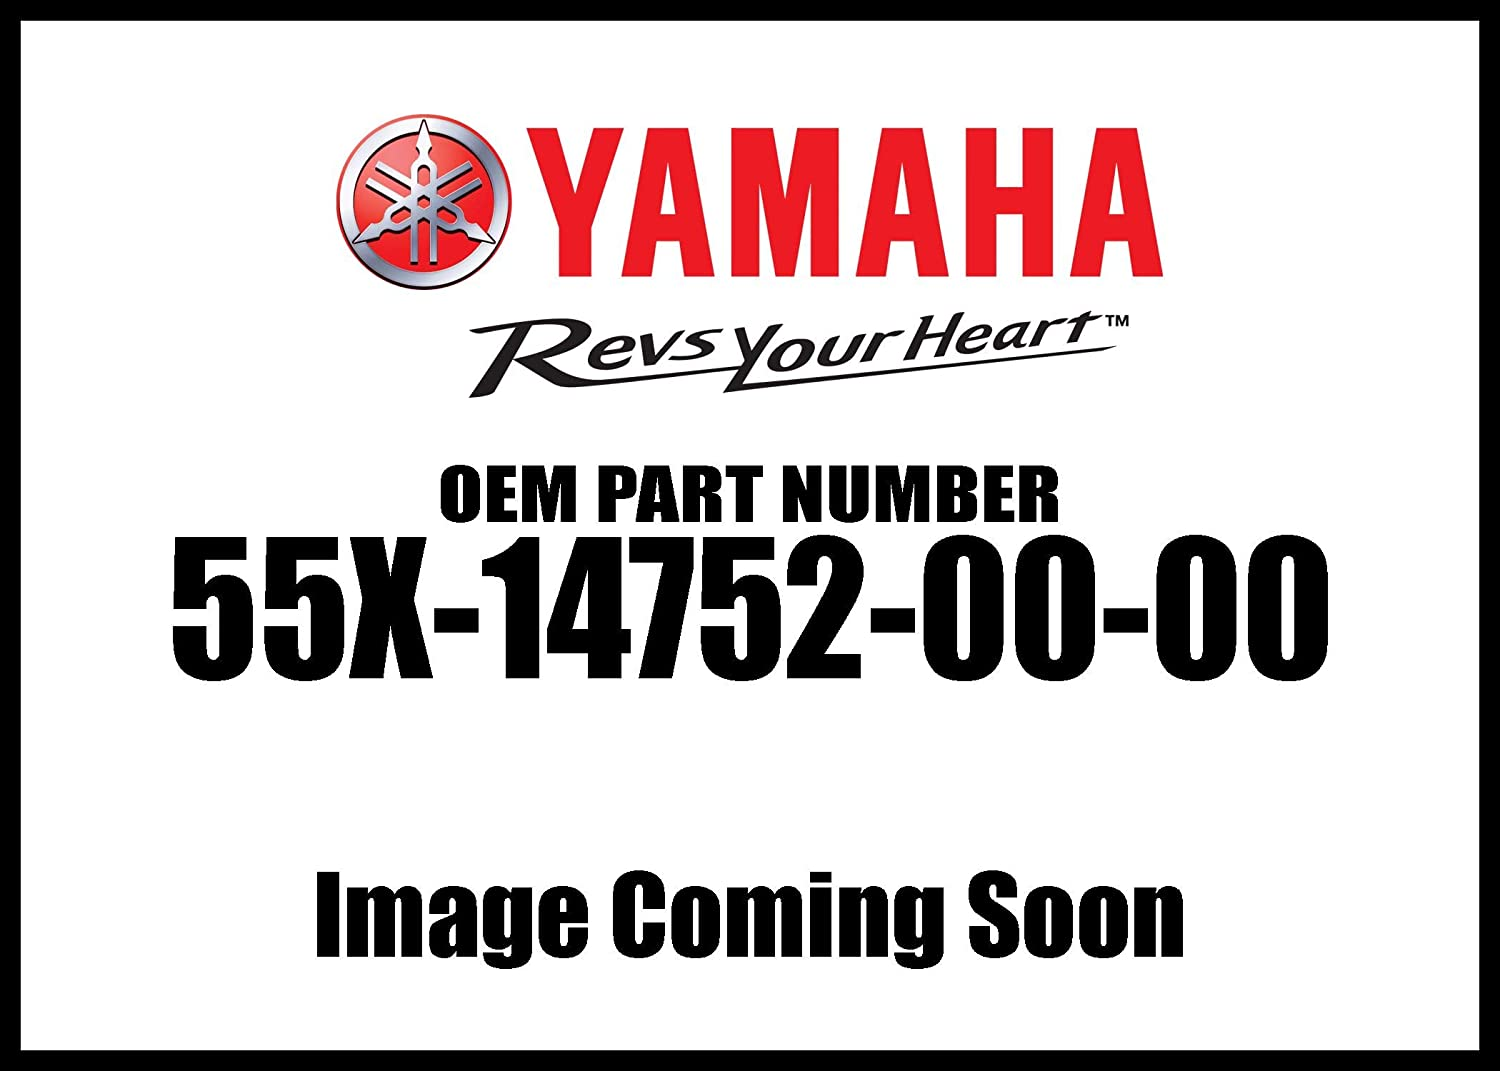 Yamaha 55X147520000 Exhaust Outlet Pipe